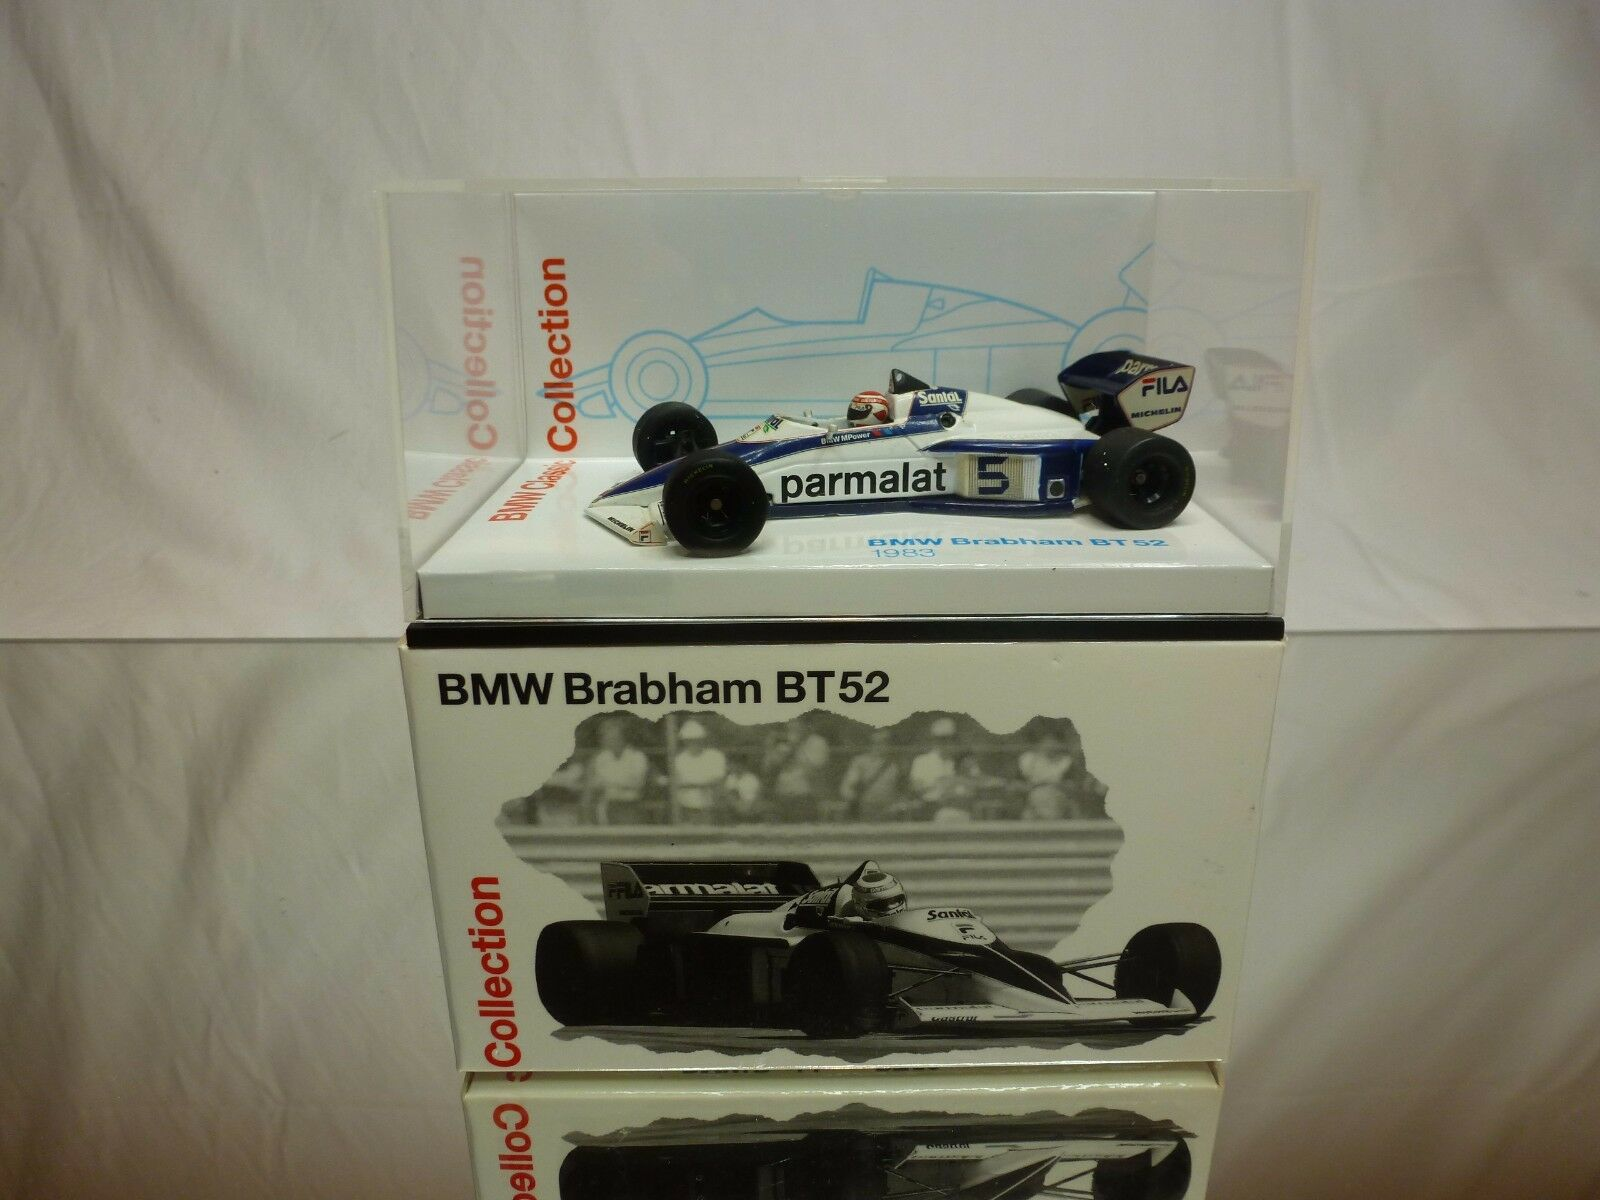 MINICHAMPS BMW BRABHAM BT52 1983 - PARMALAT blanc 1 43 - GOOD CONDITION IN BOX